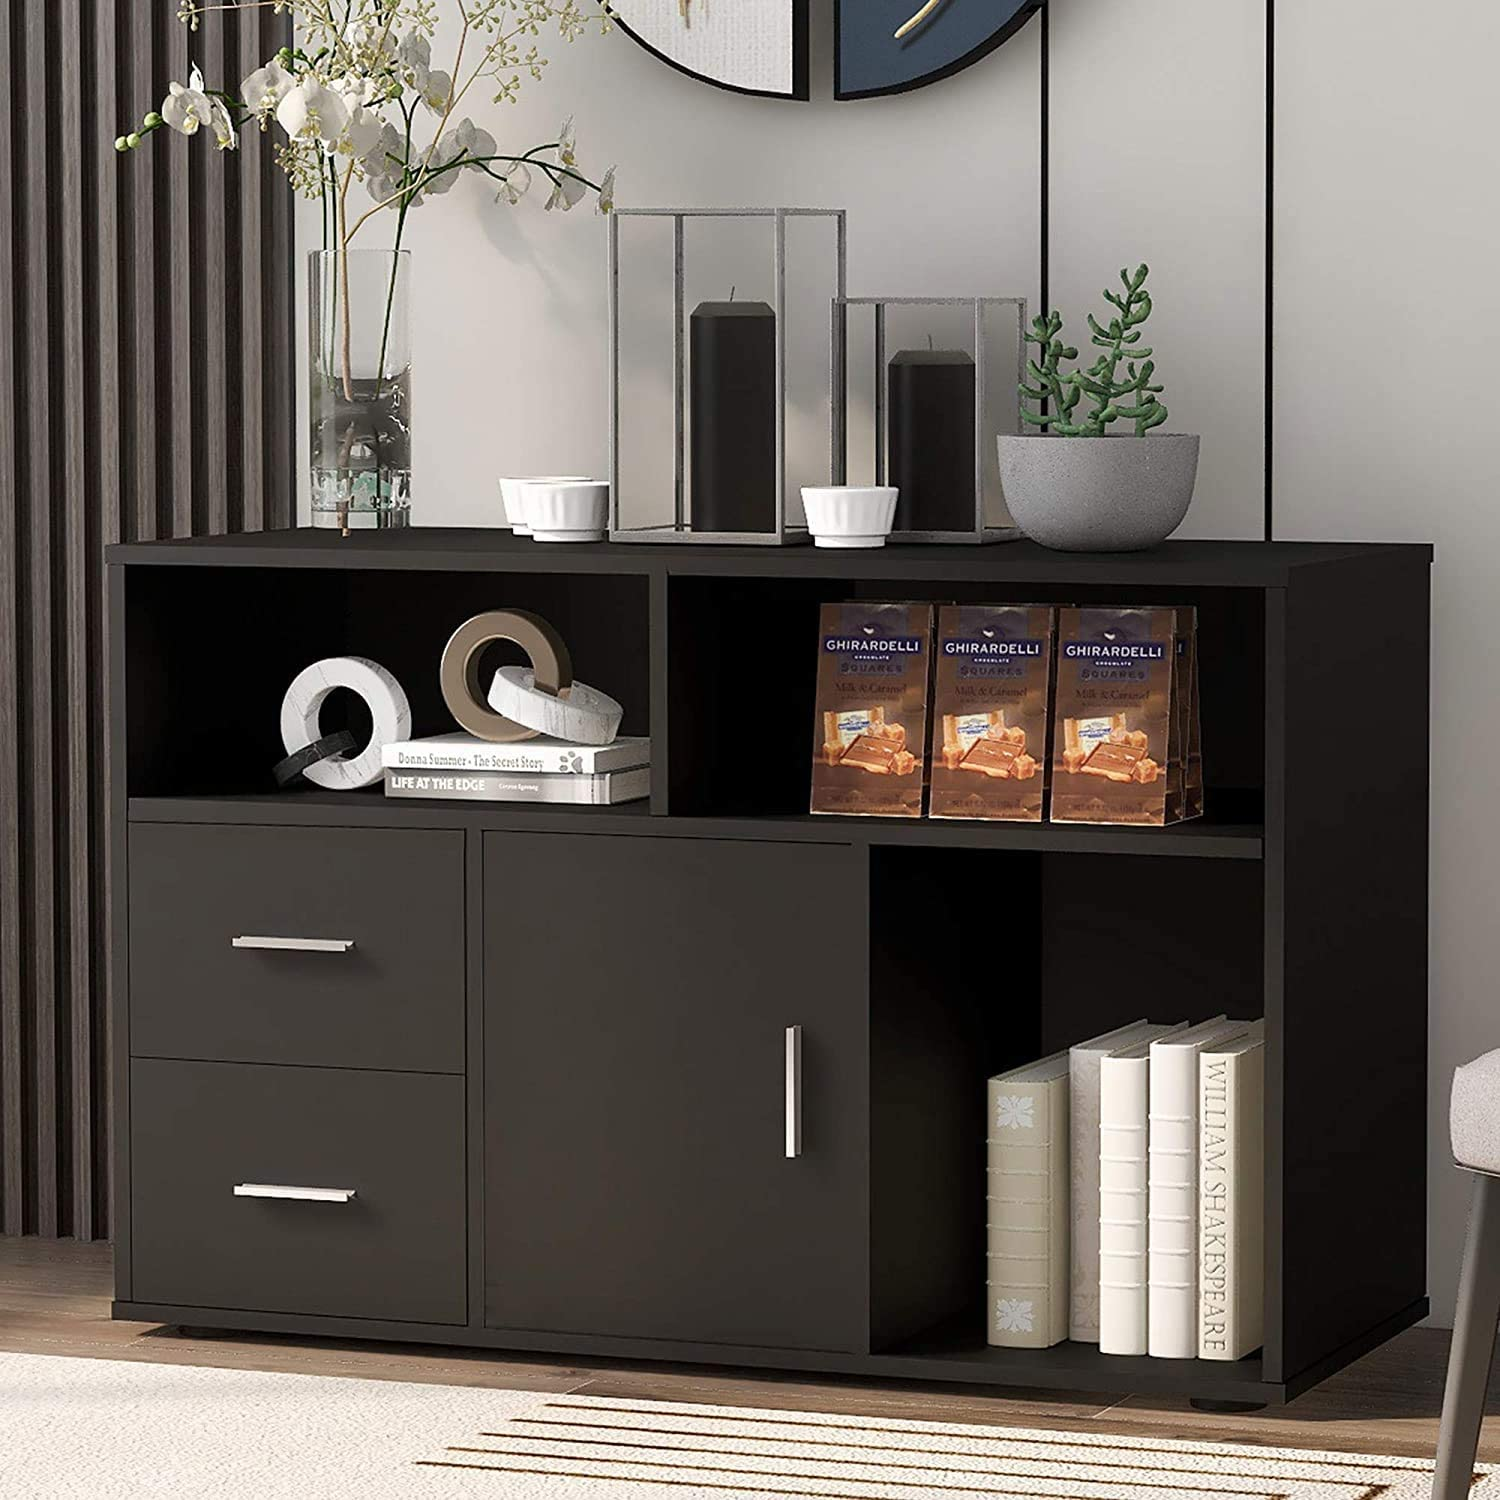 Ouryes Black Wood Sideboard TV Stand Storage Cabinet for Living Room Bedroom Kitchen 2 Drawers,1 doors,3 storage shelf 100 CM X 40CM X 66cm